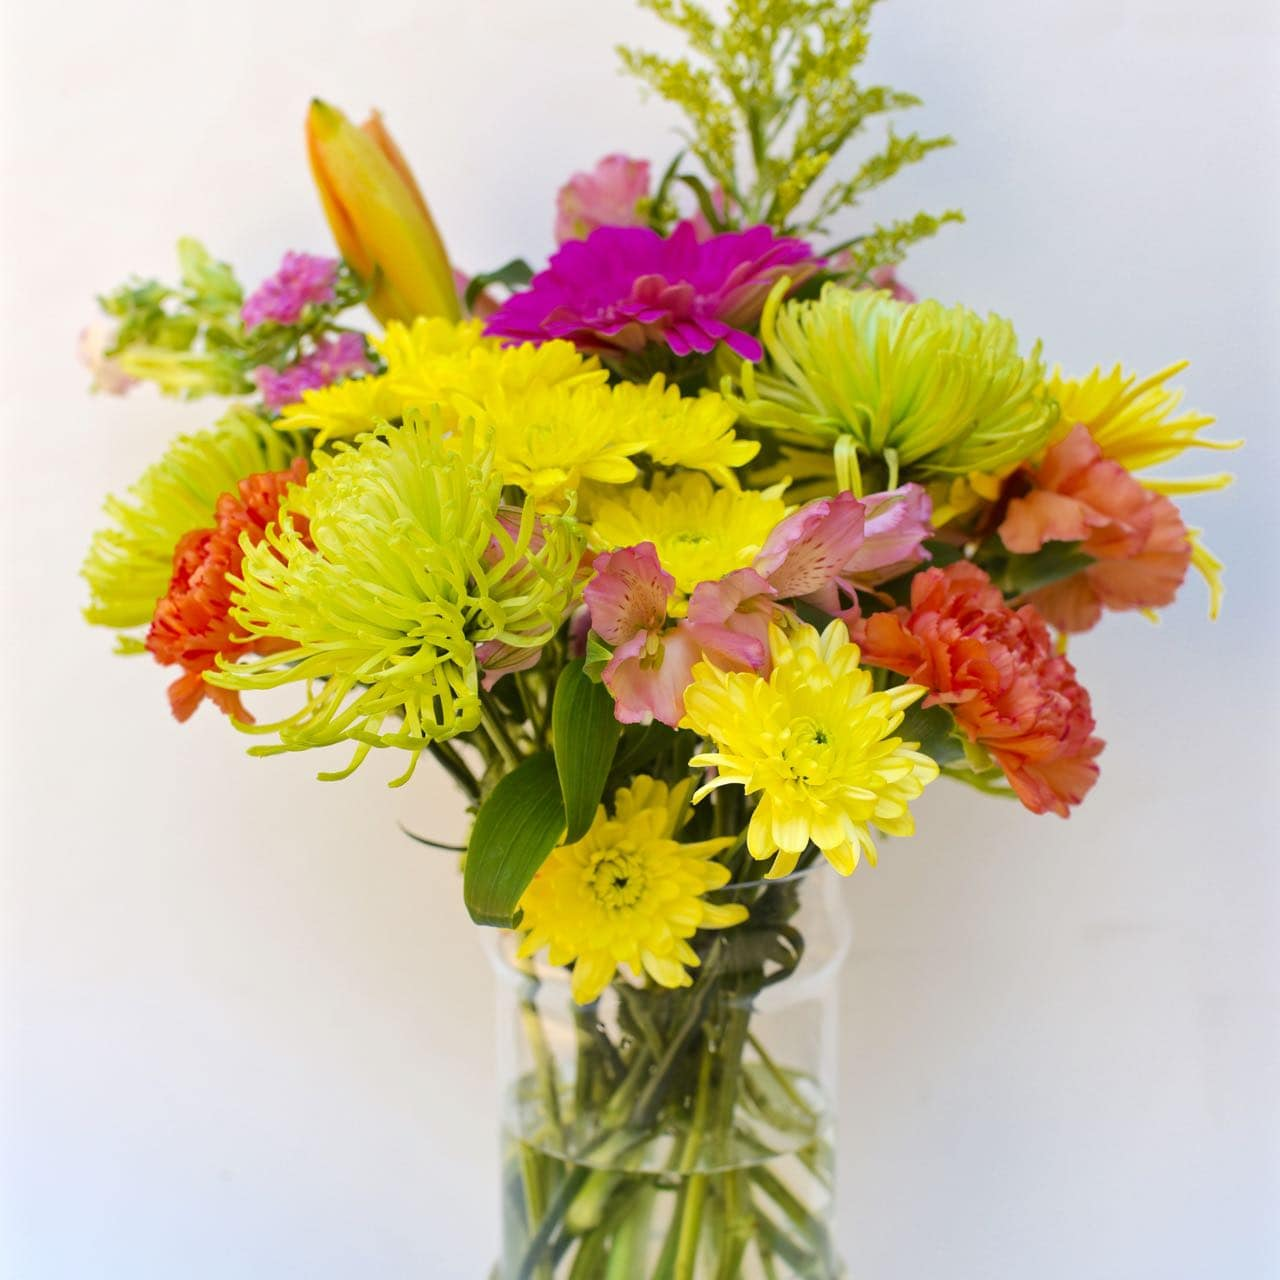 How to make a flower arrangement from grocery store flowers